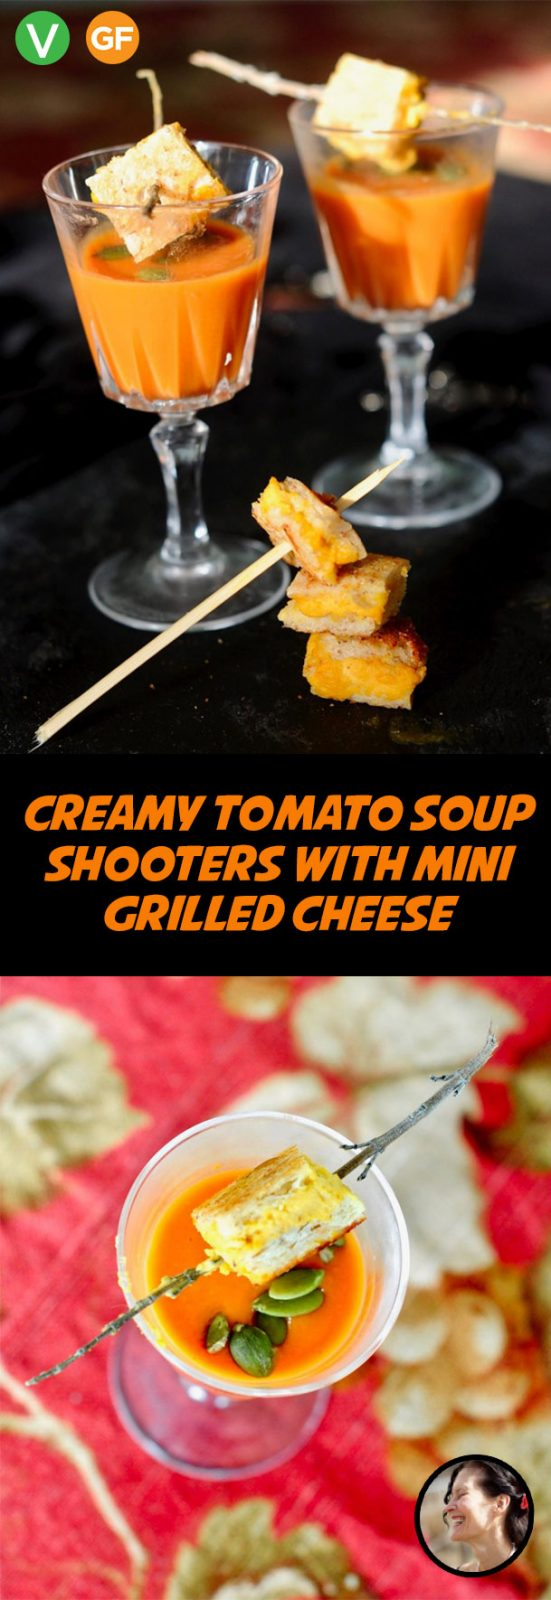 Creamy Tomato Soup Shooters with Mini Grilled Cheese, Vegan, Gluten Free